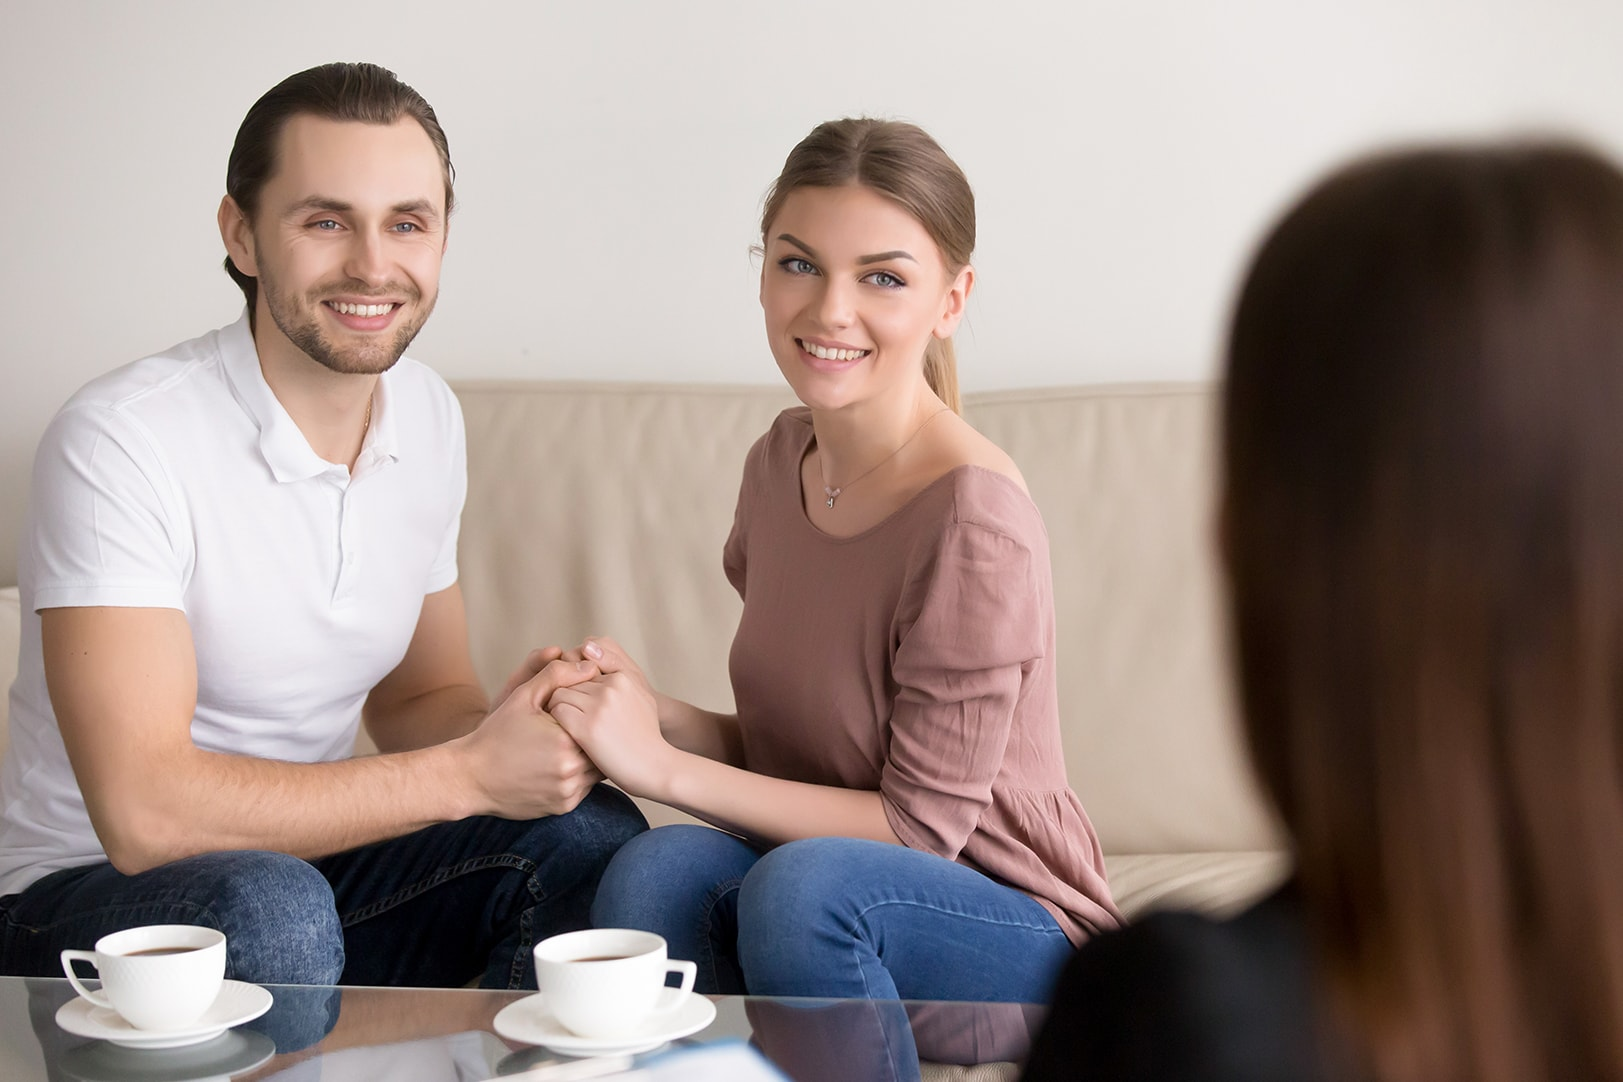 Psychologist from Mindsight Clinic in counselling for relationship with the couple conducting relationship counselling